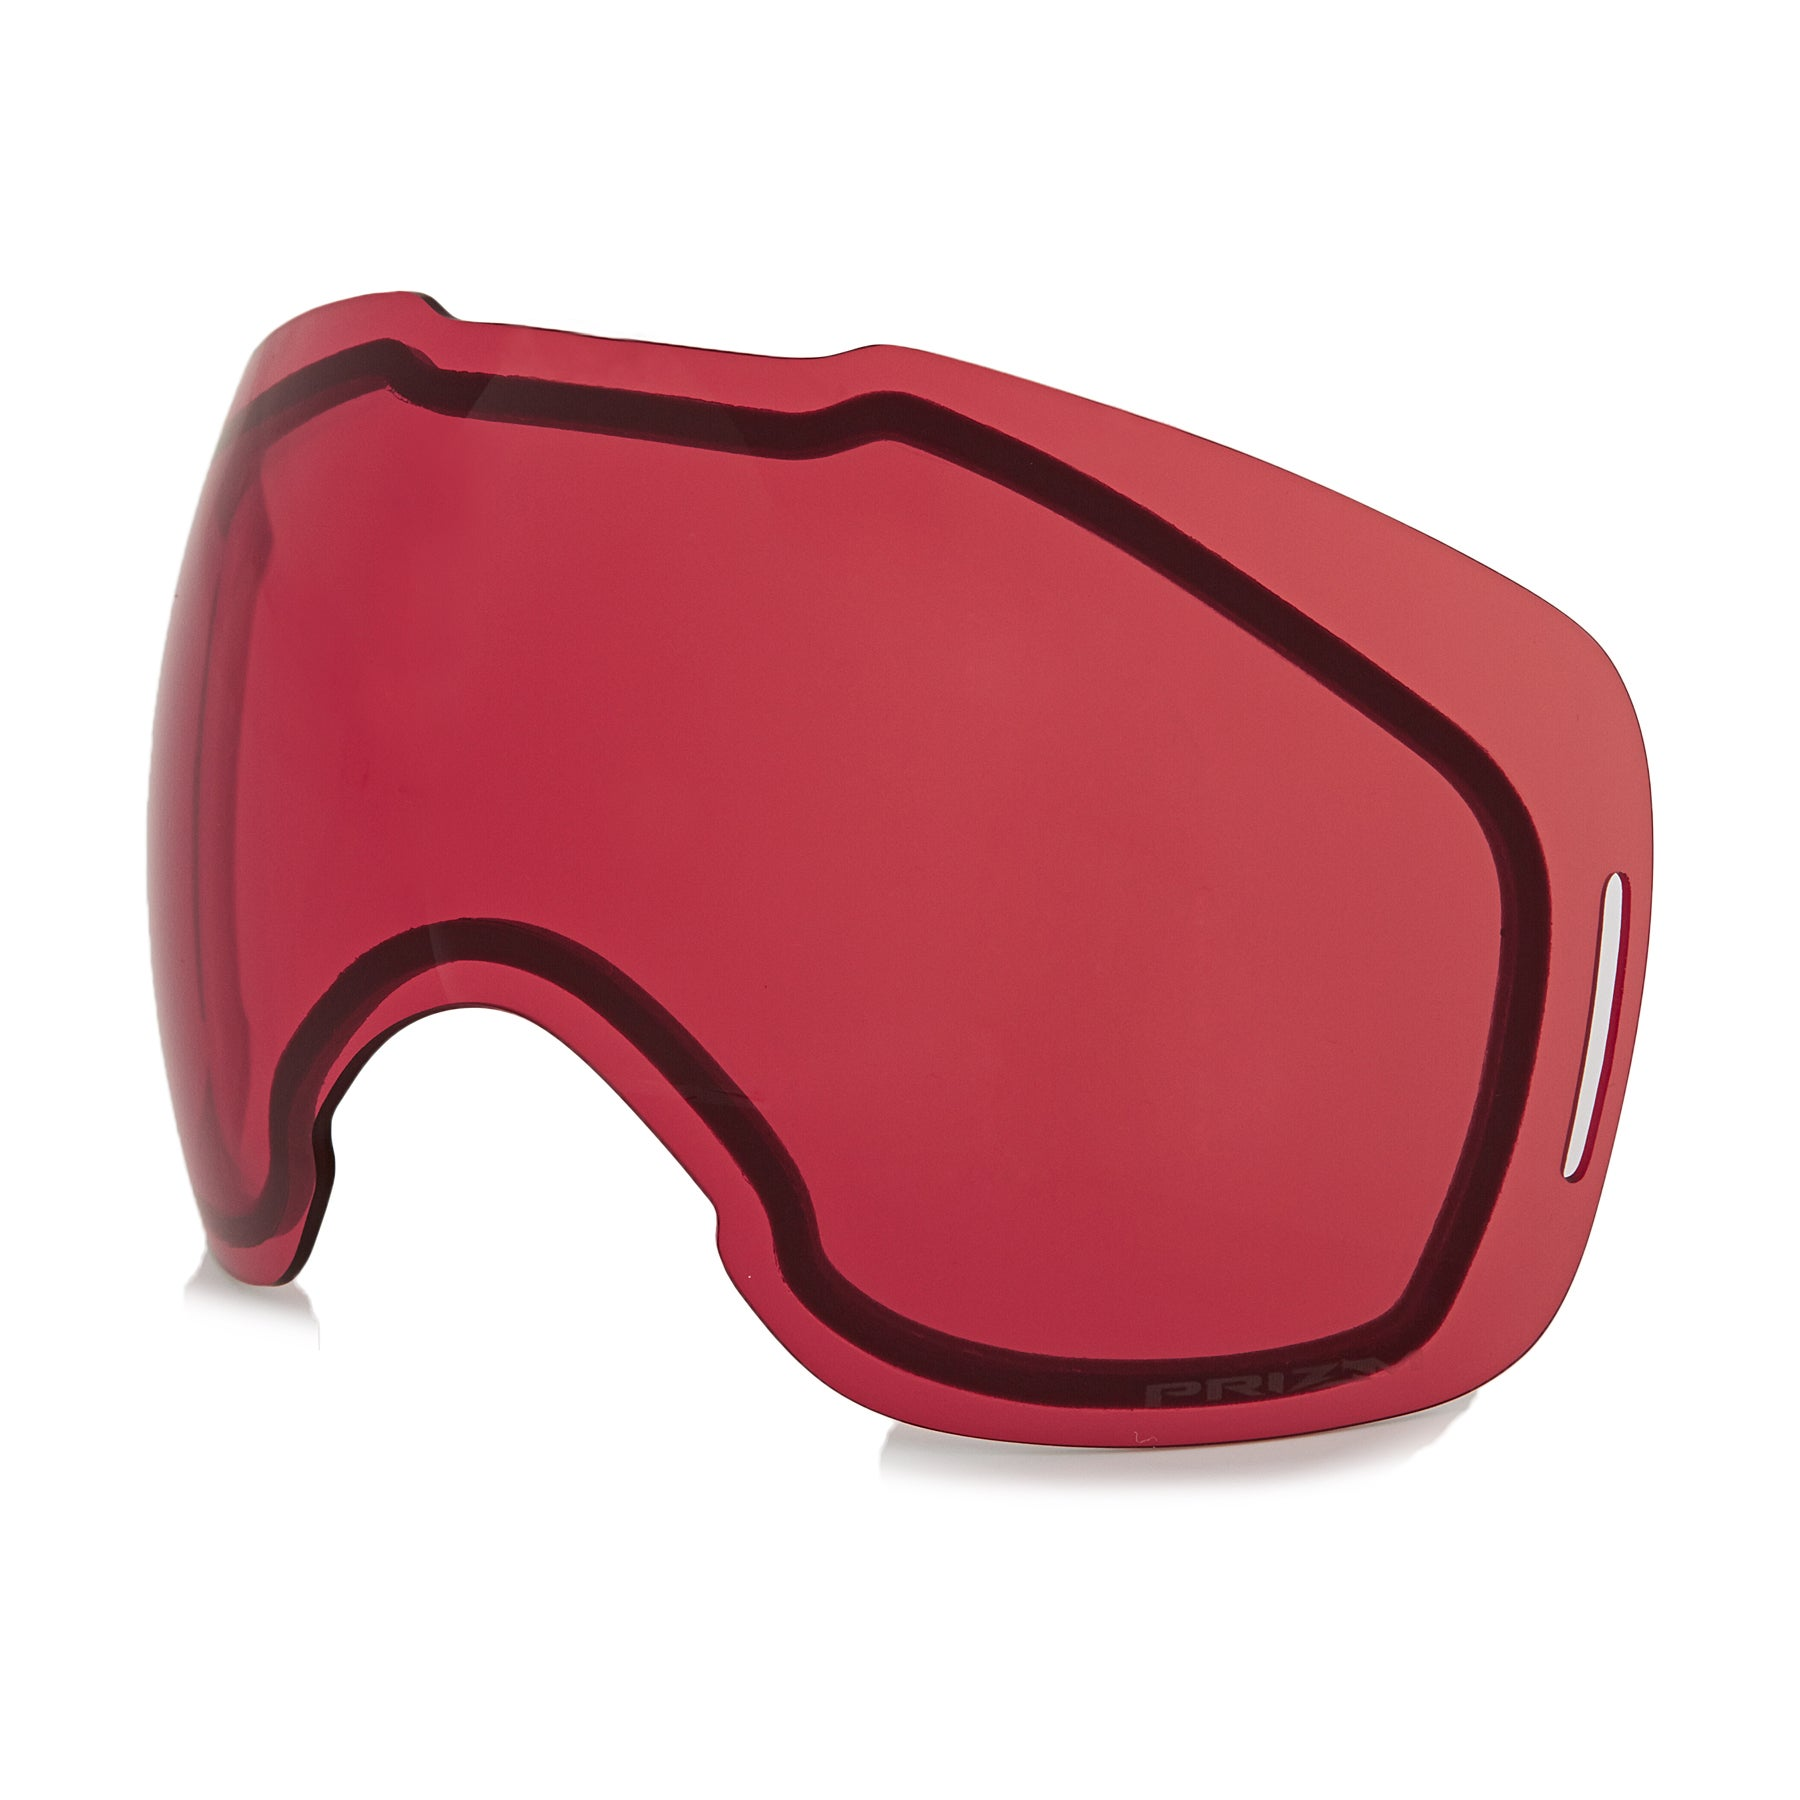 1275a6564d25 Oakley Airbrake XL Replacement Lense available from Surfdome